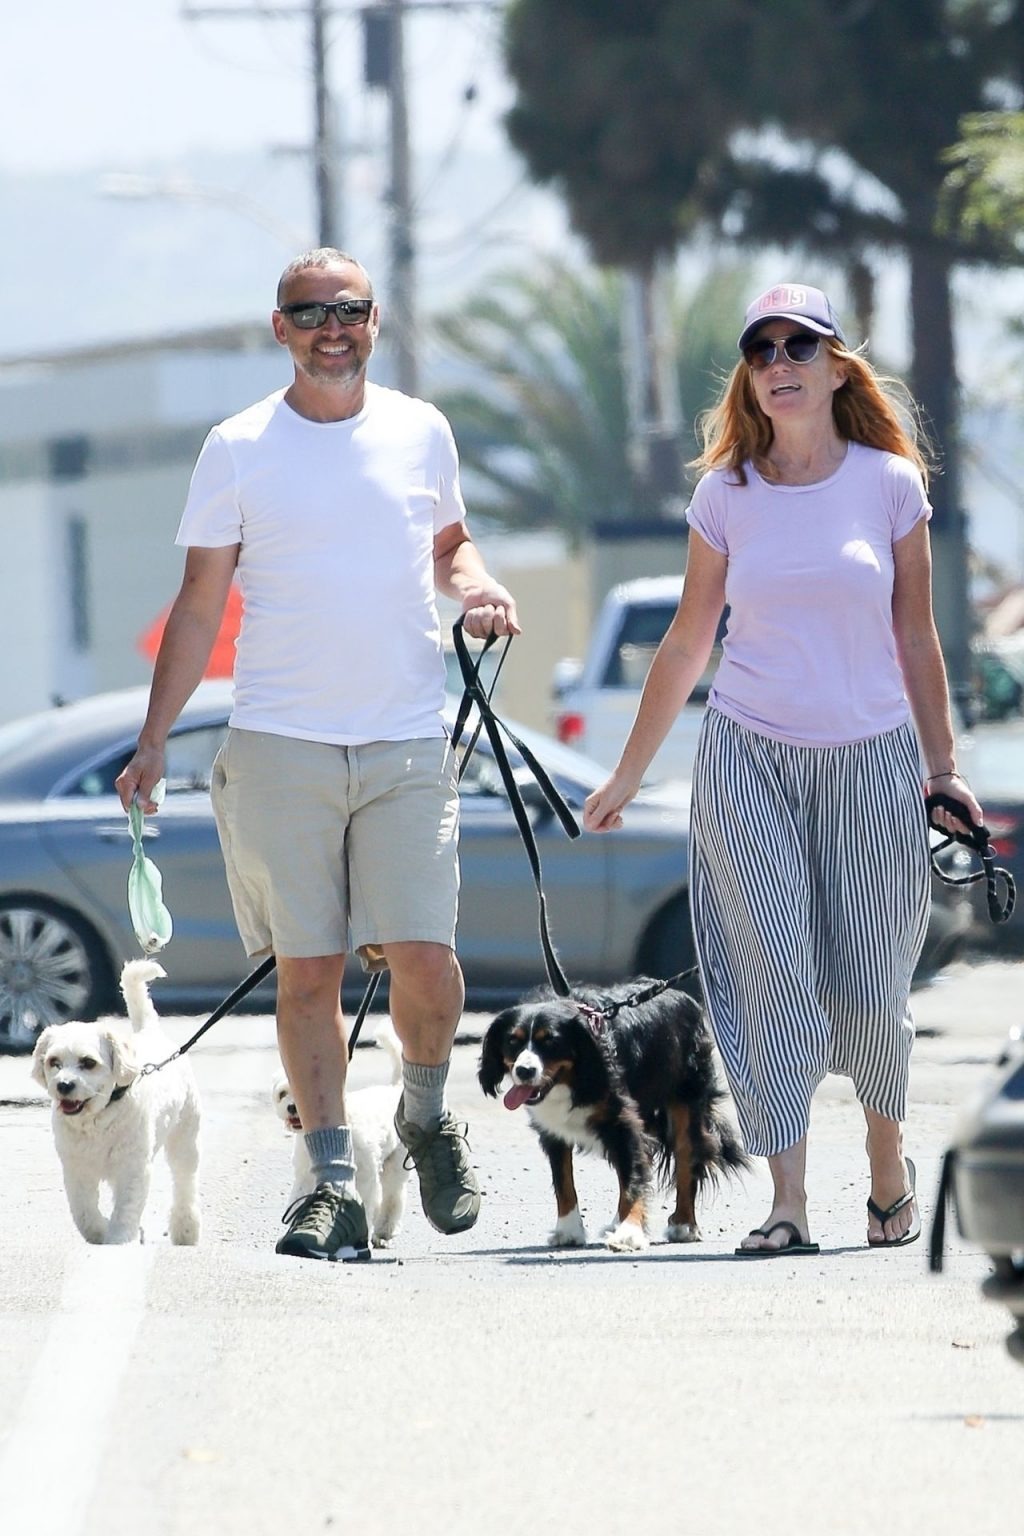 Patsy Palmer & Richard Merkell are Taking the Dogs for a Walk (20 Photos)